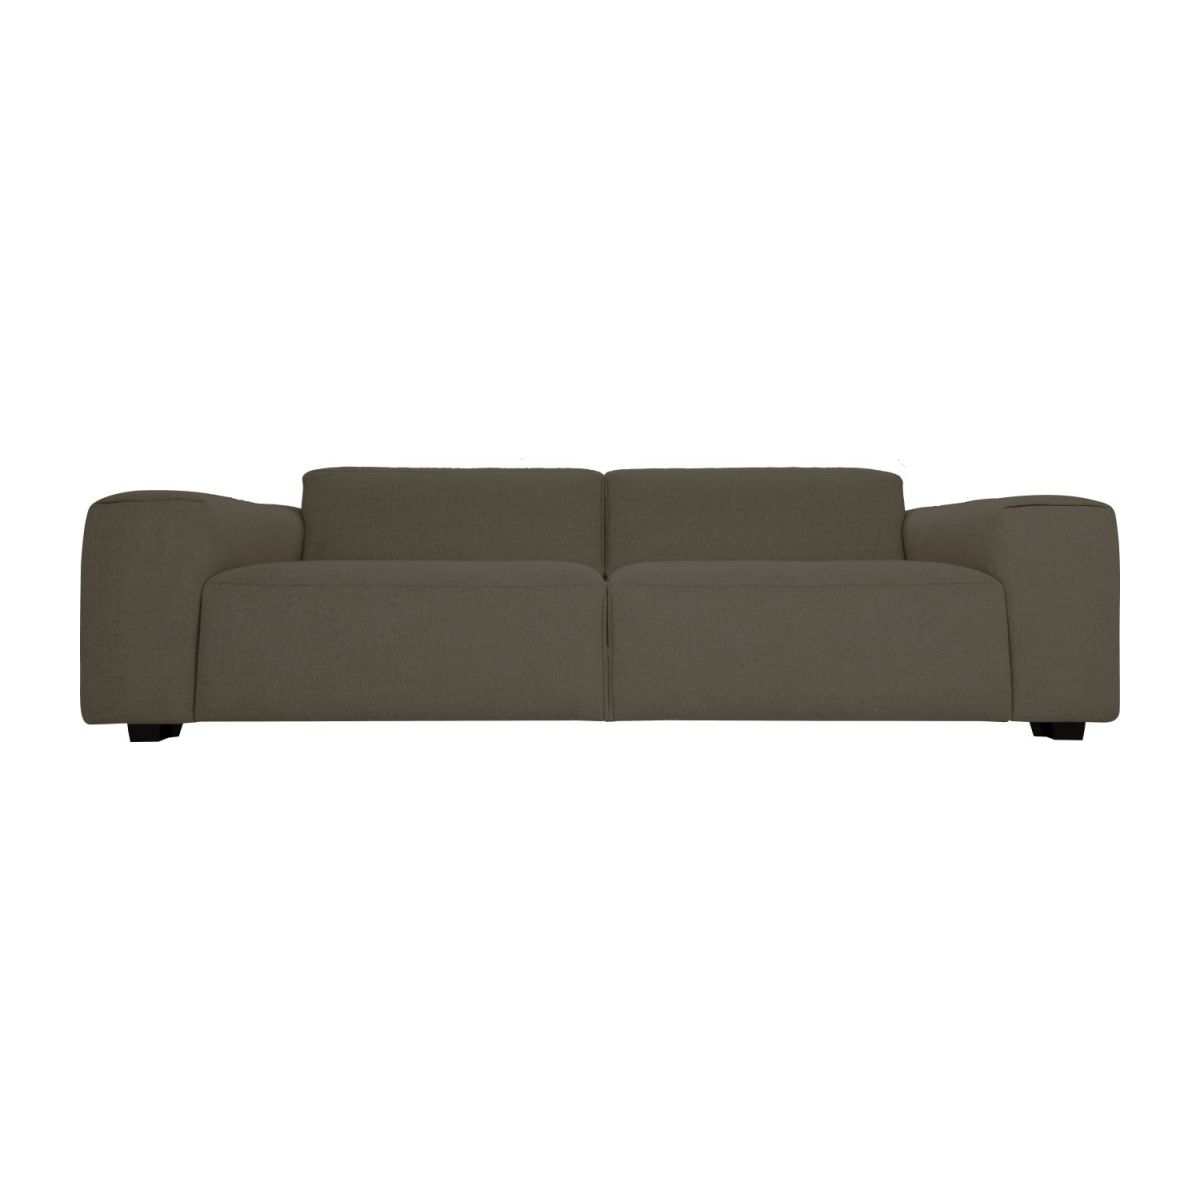 4 seater sofa in Lecce fabric, muscat n°2